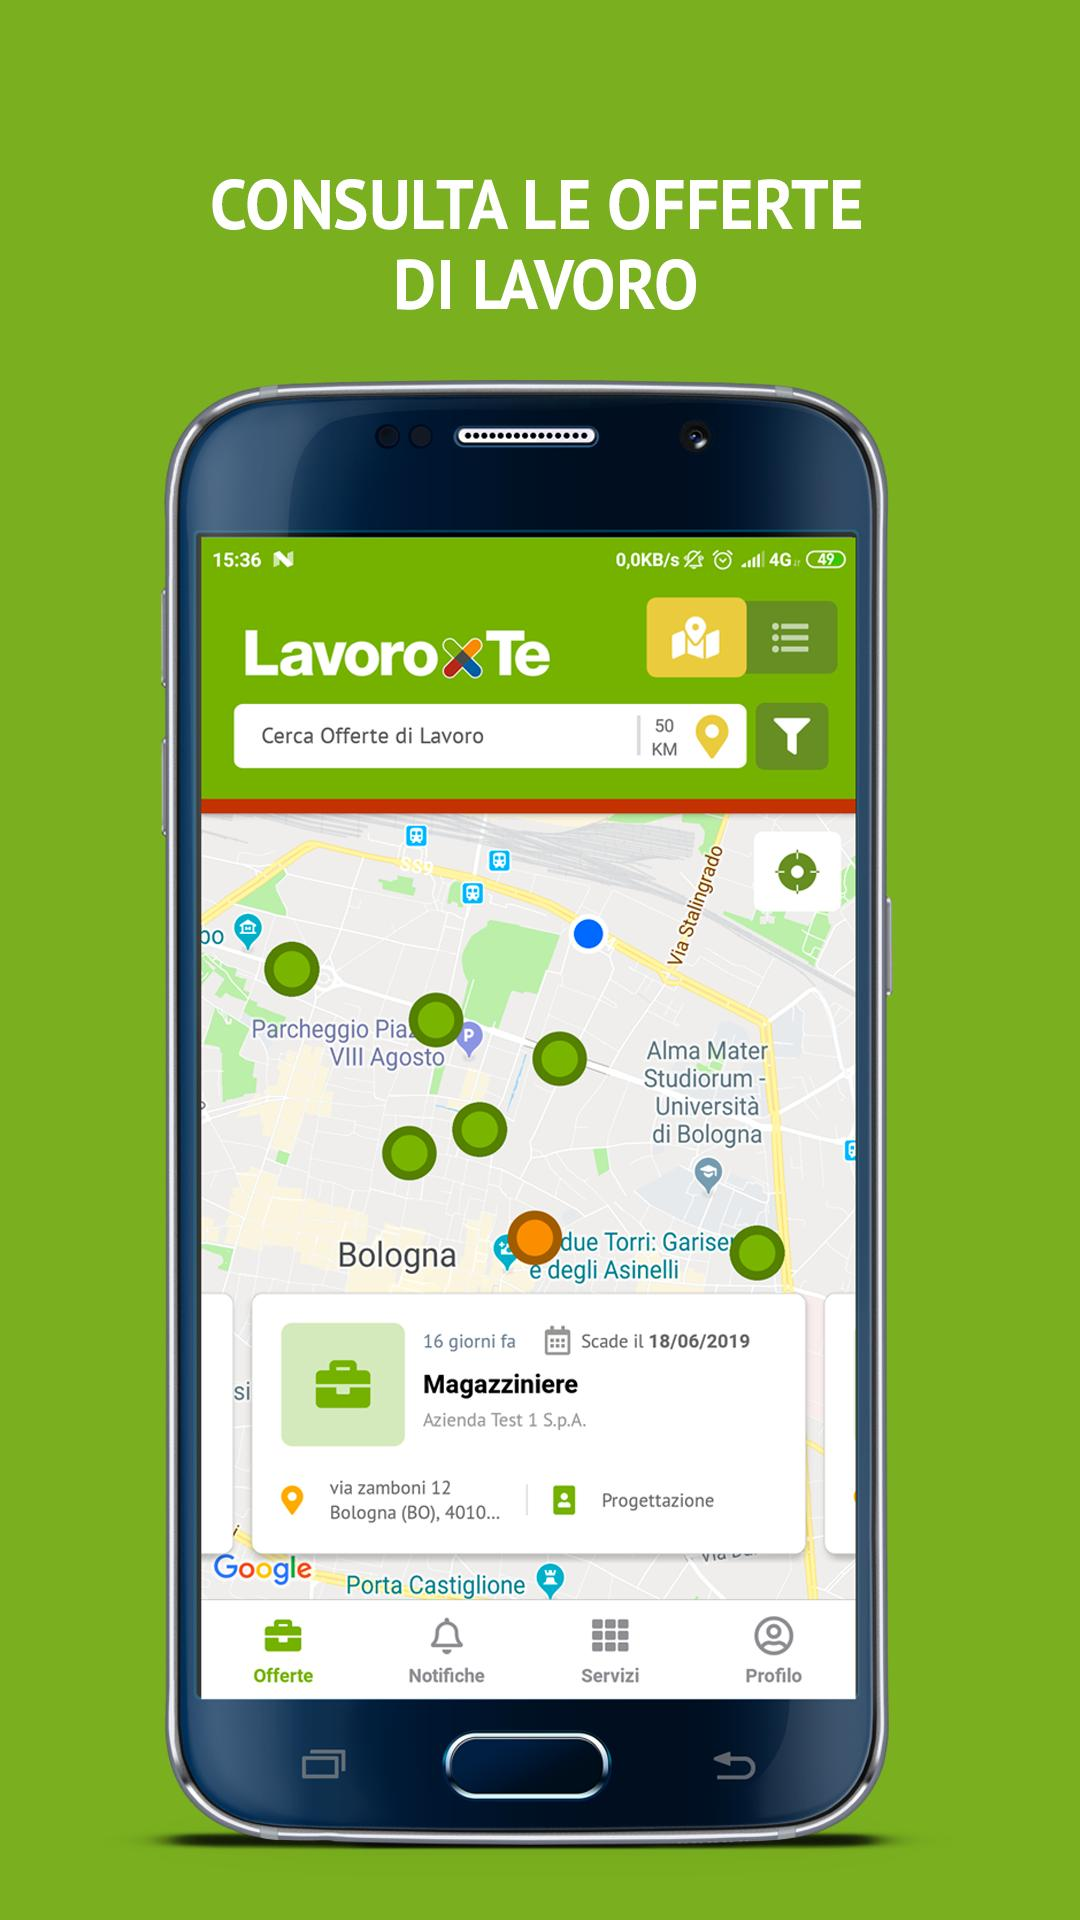 Lavoro per Te Emilia-Romagna for Android - APK Download